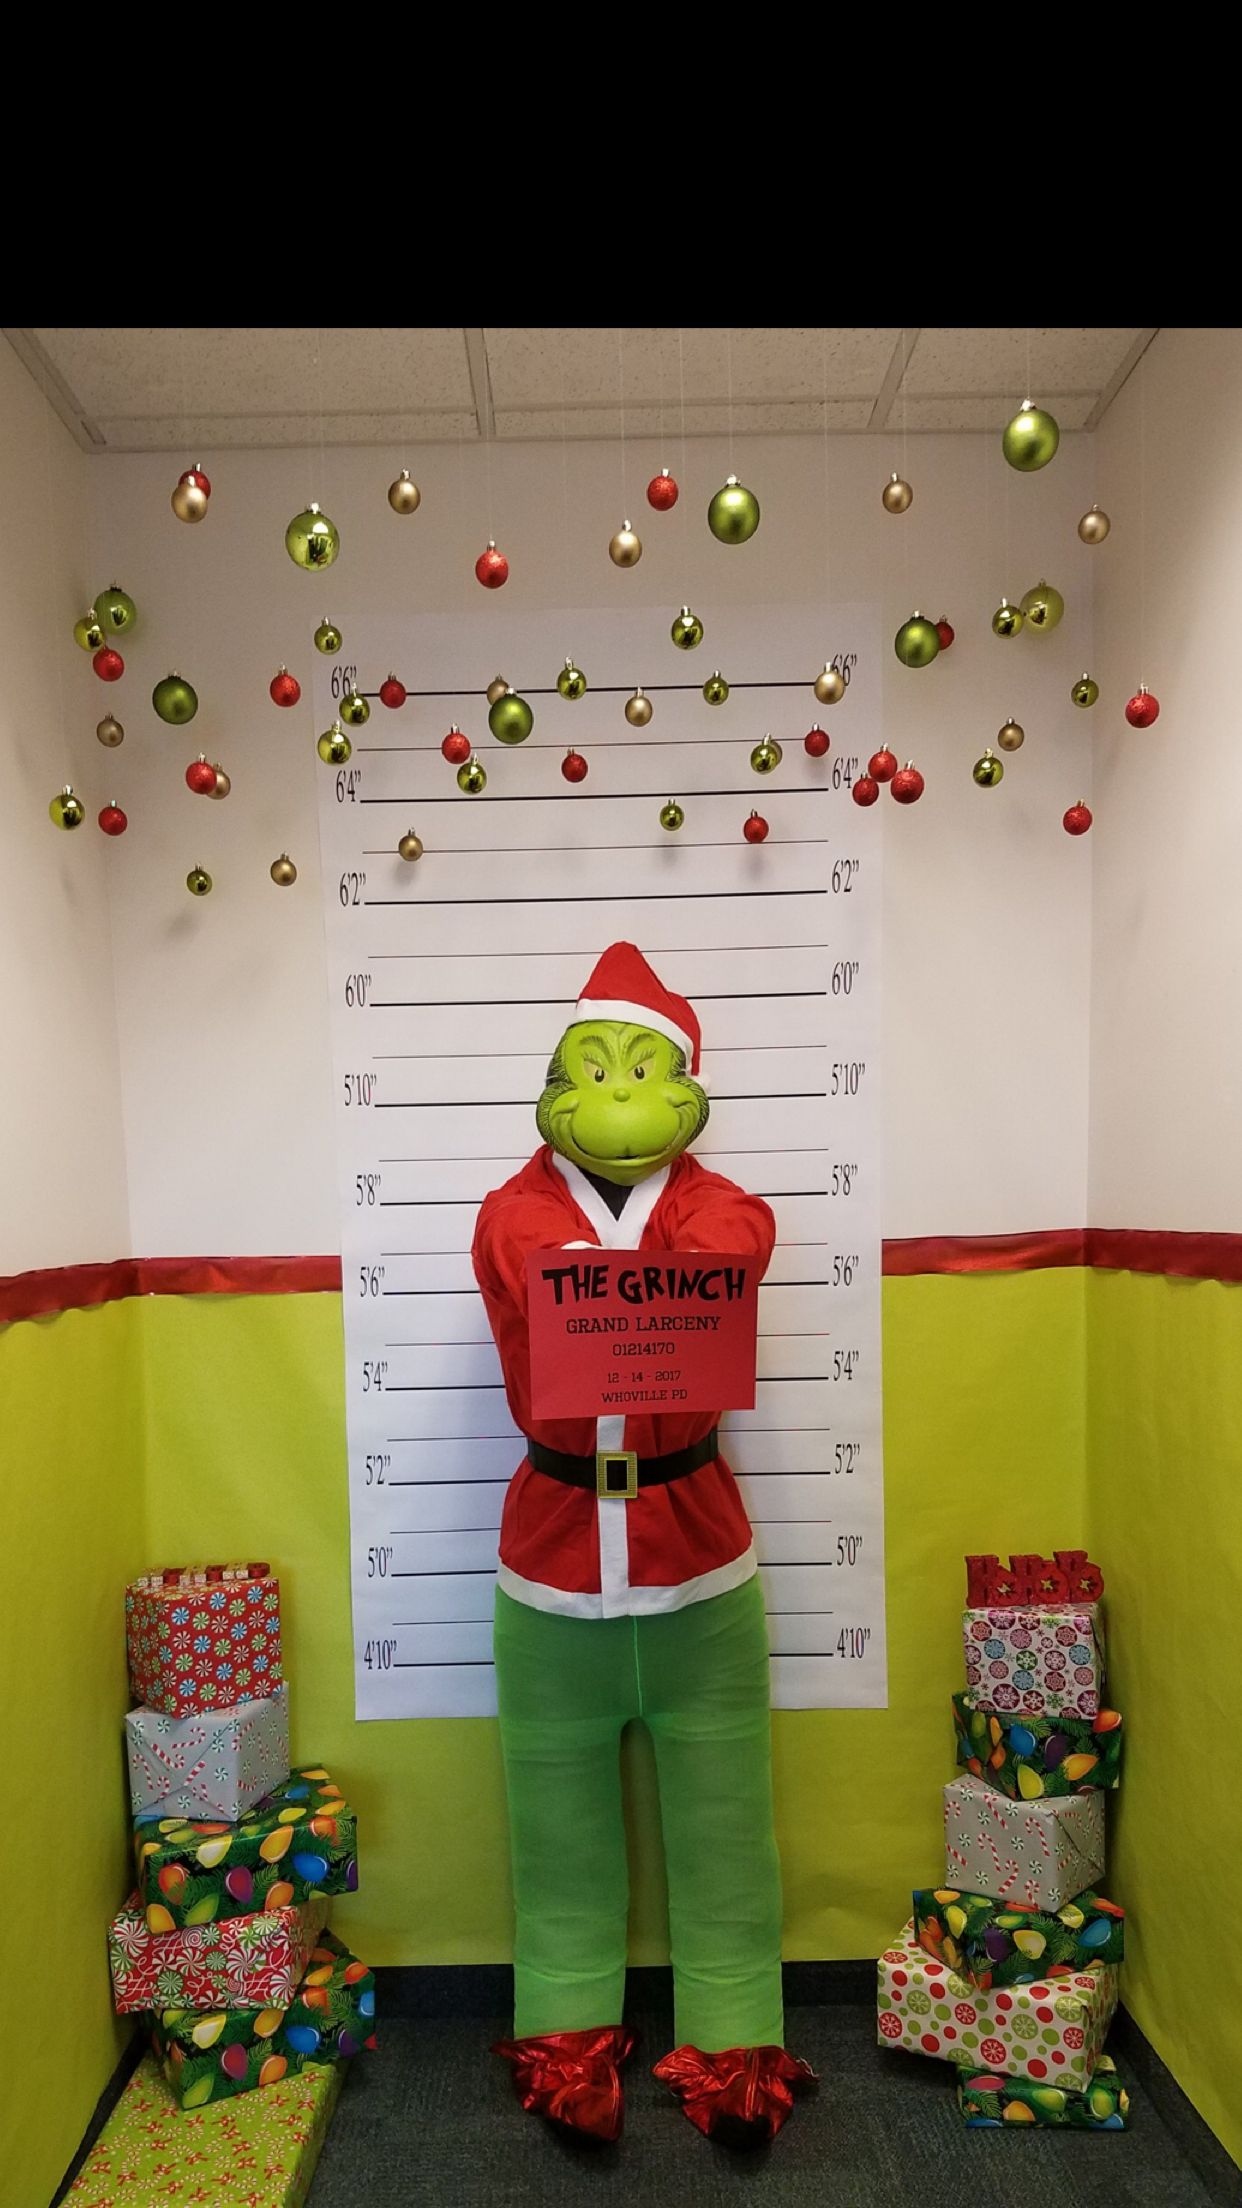 grinch stole christmas office decorations easy pinterest whoville office decorations how the grinch stole christmas photo booth